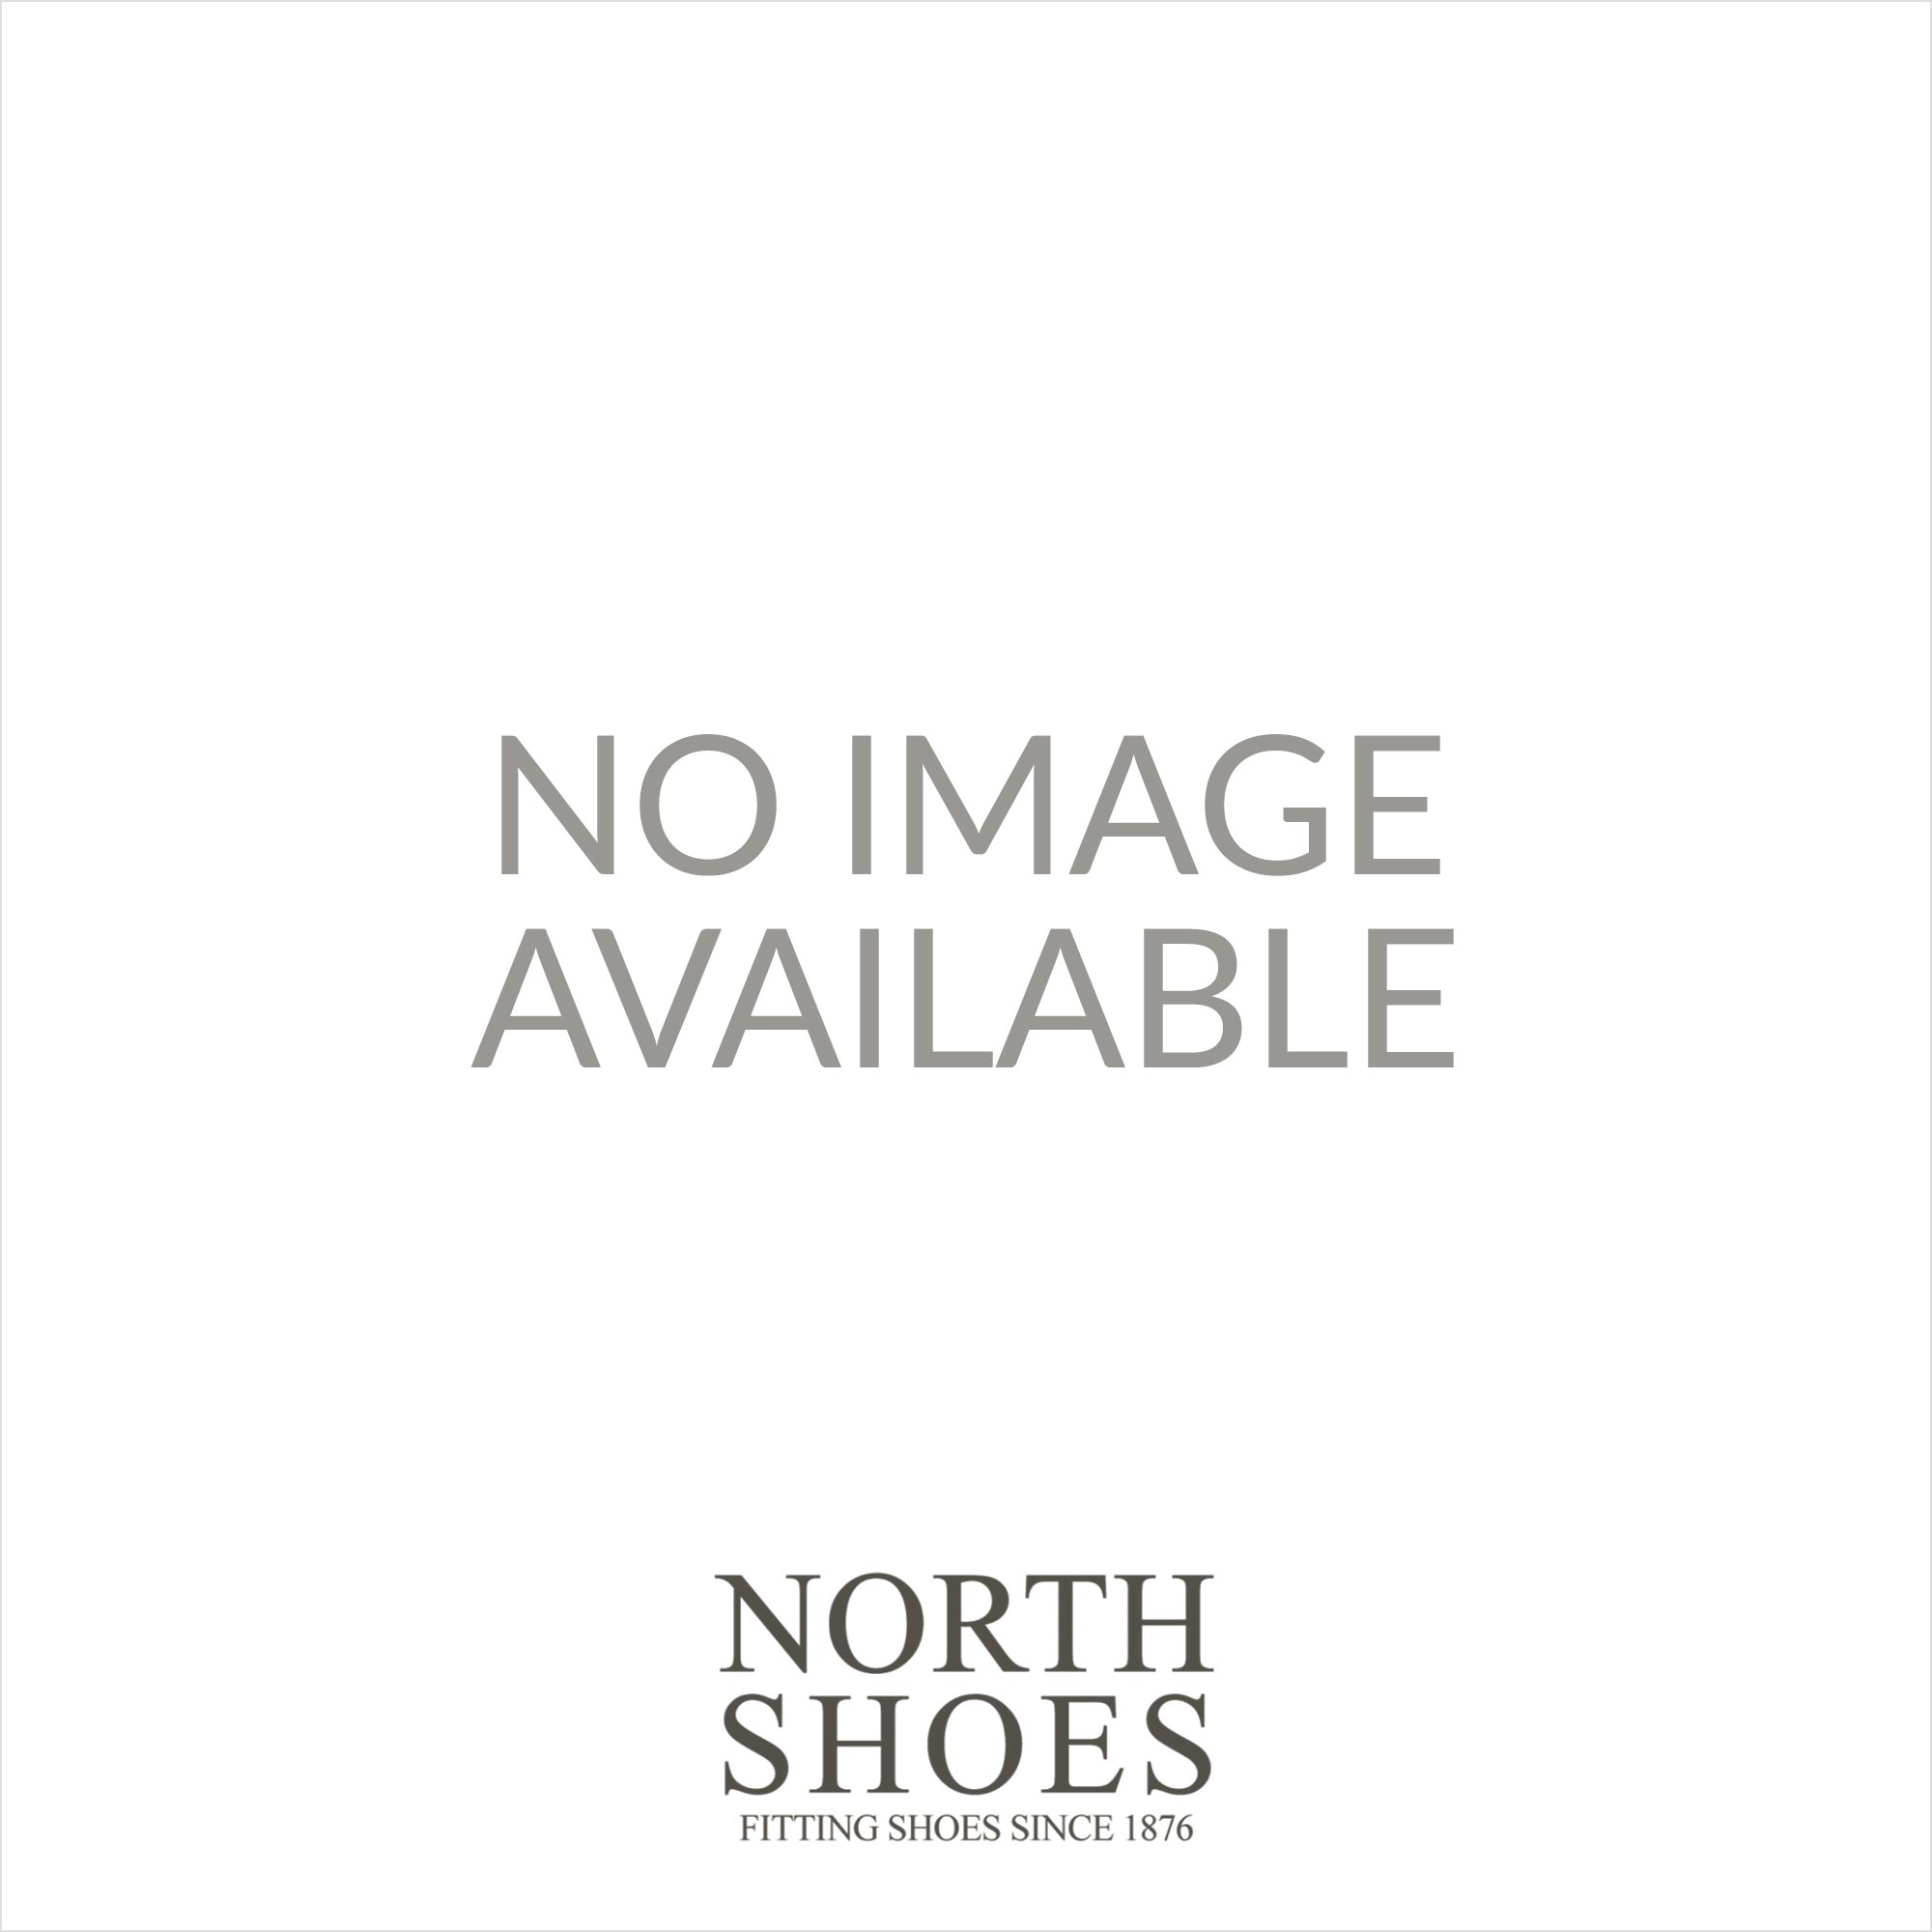 05a51e2b8fc9 Skechers Relaxed Fit  Pelem - Emiro 65093 Charcoal Mens Toe Post Flip Flop  Sandals - Skechers from North Shoes UK